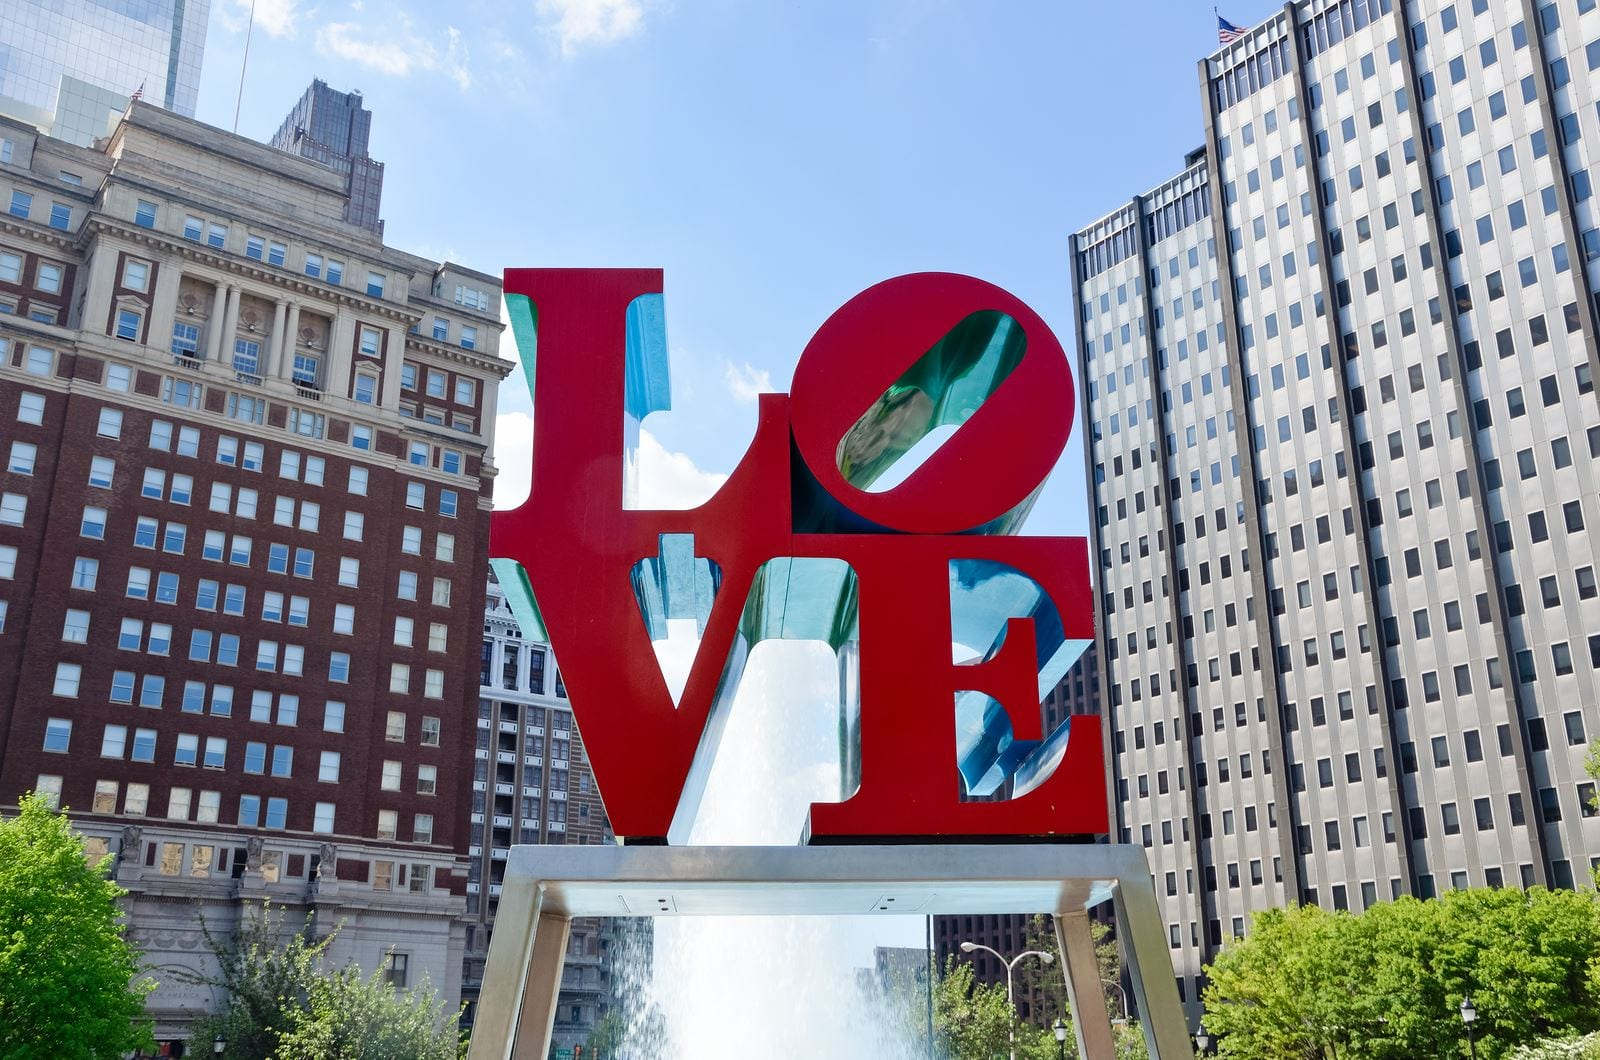 Philadelphia Real Estate Market 2019: Why and Where to